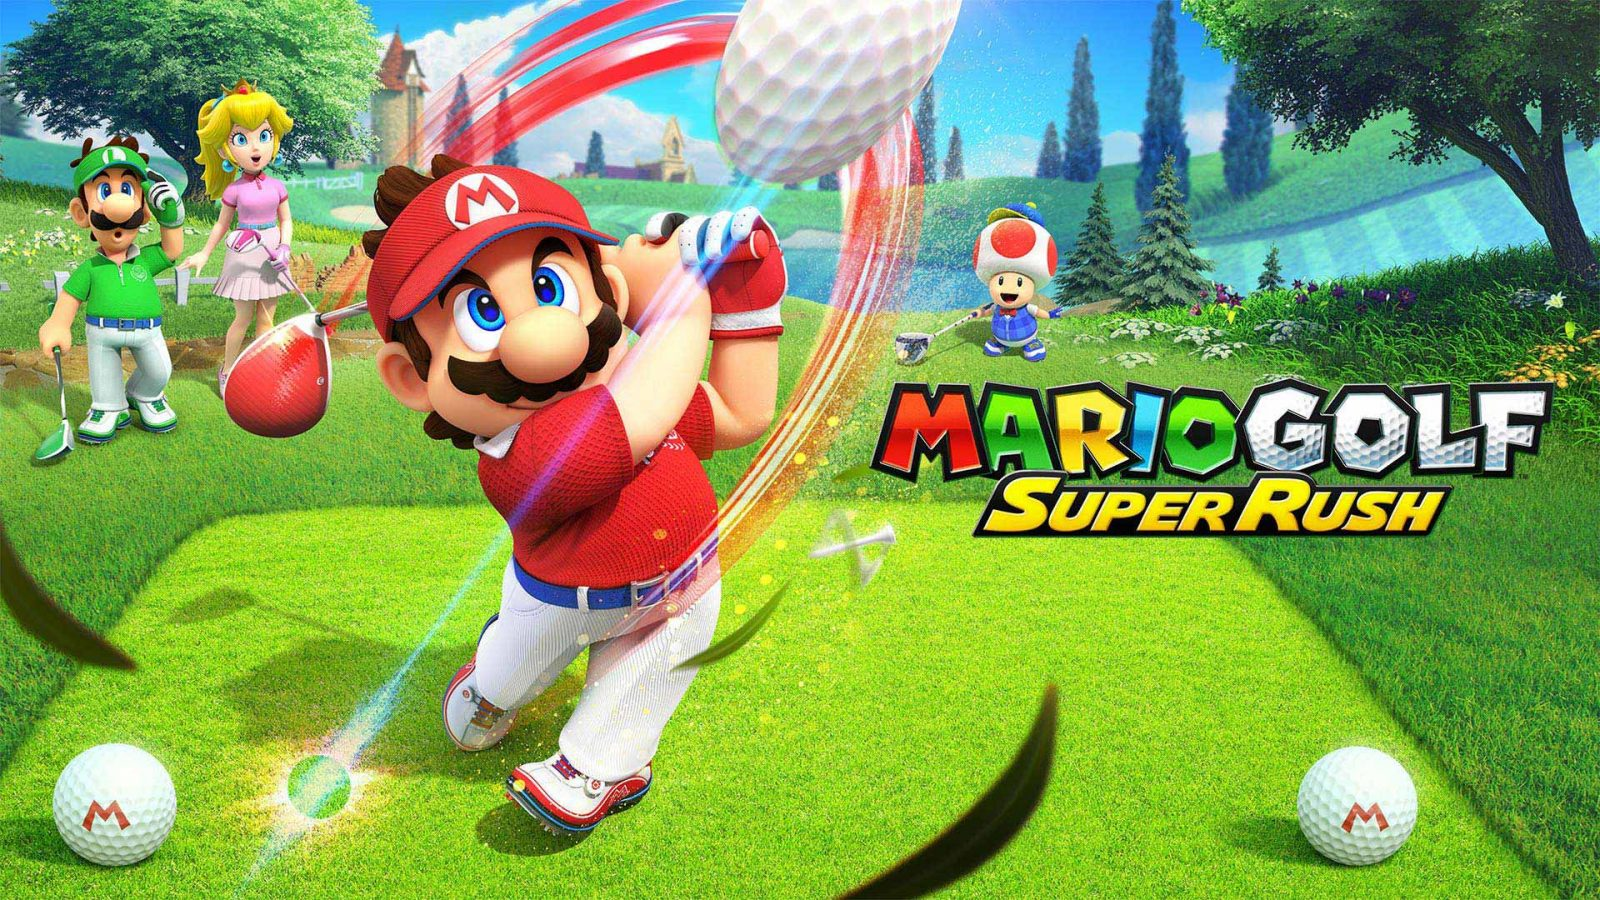 Mario Golf Super Rush Everything About Release Date, Game Modes & Characters